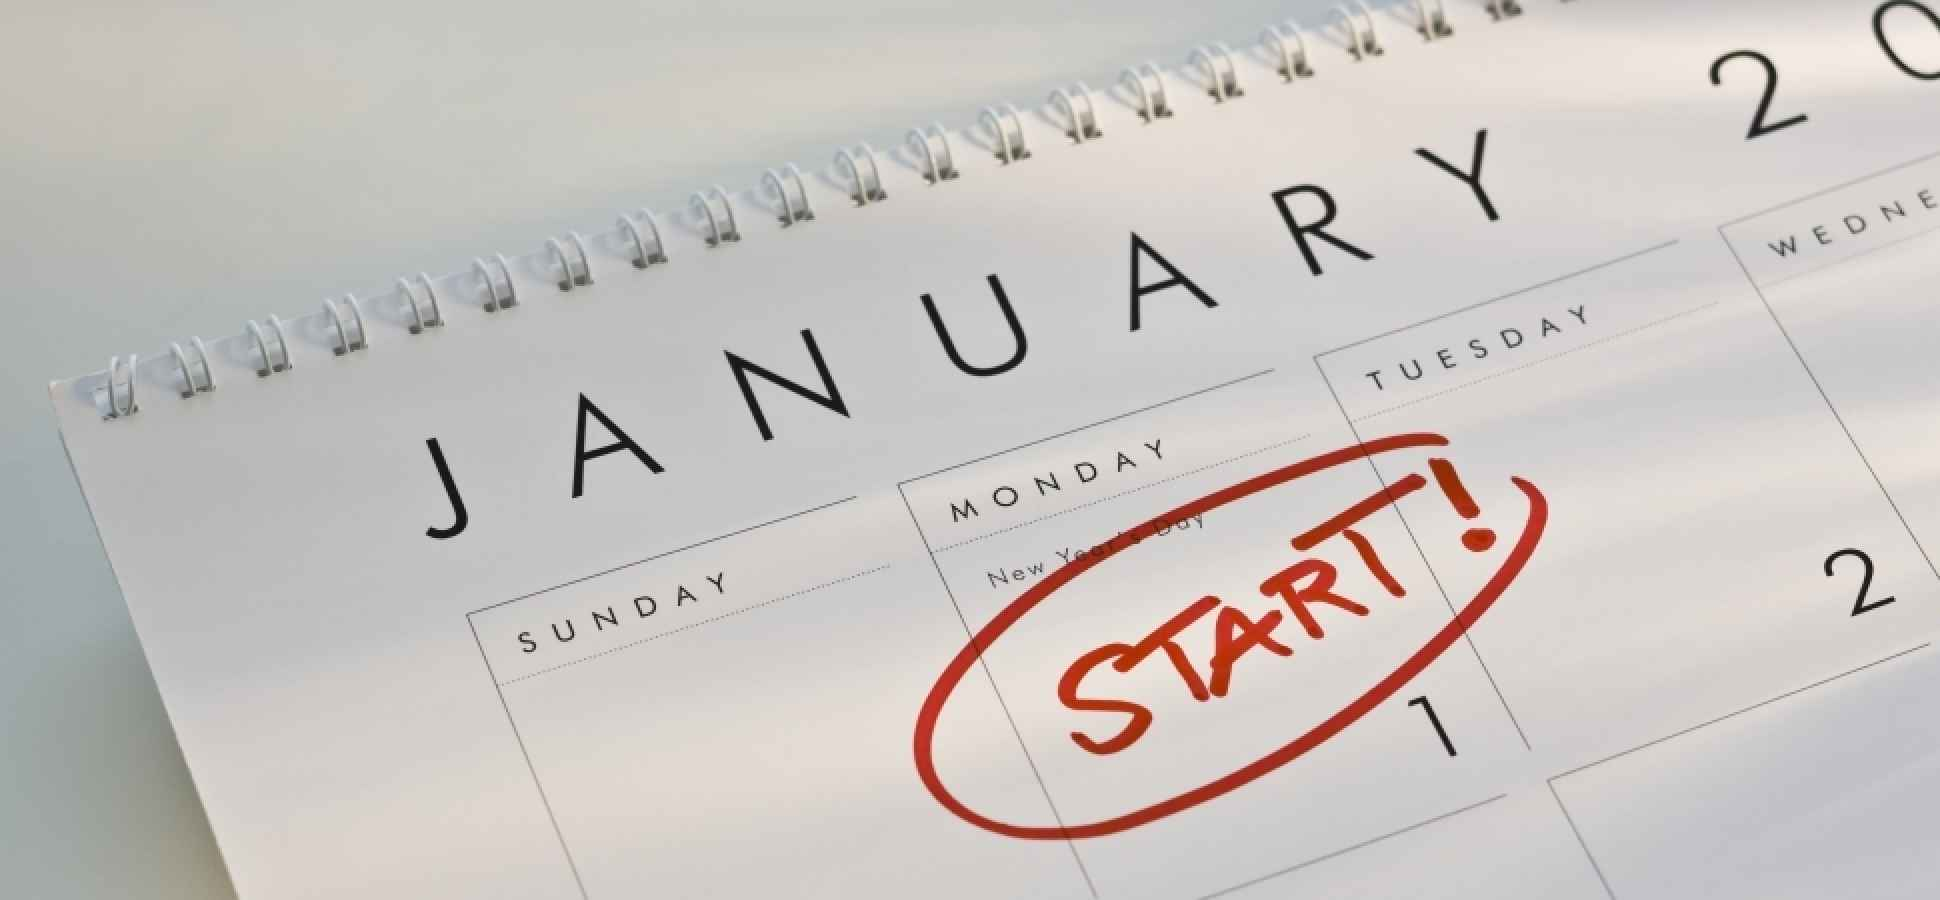 5 New Year's Resolutions Every Entrepreneur Should Make